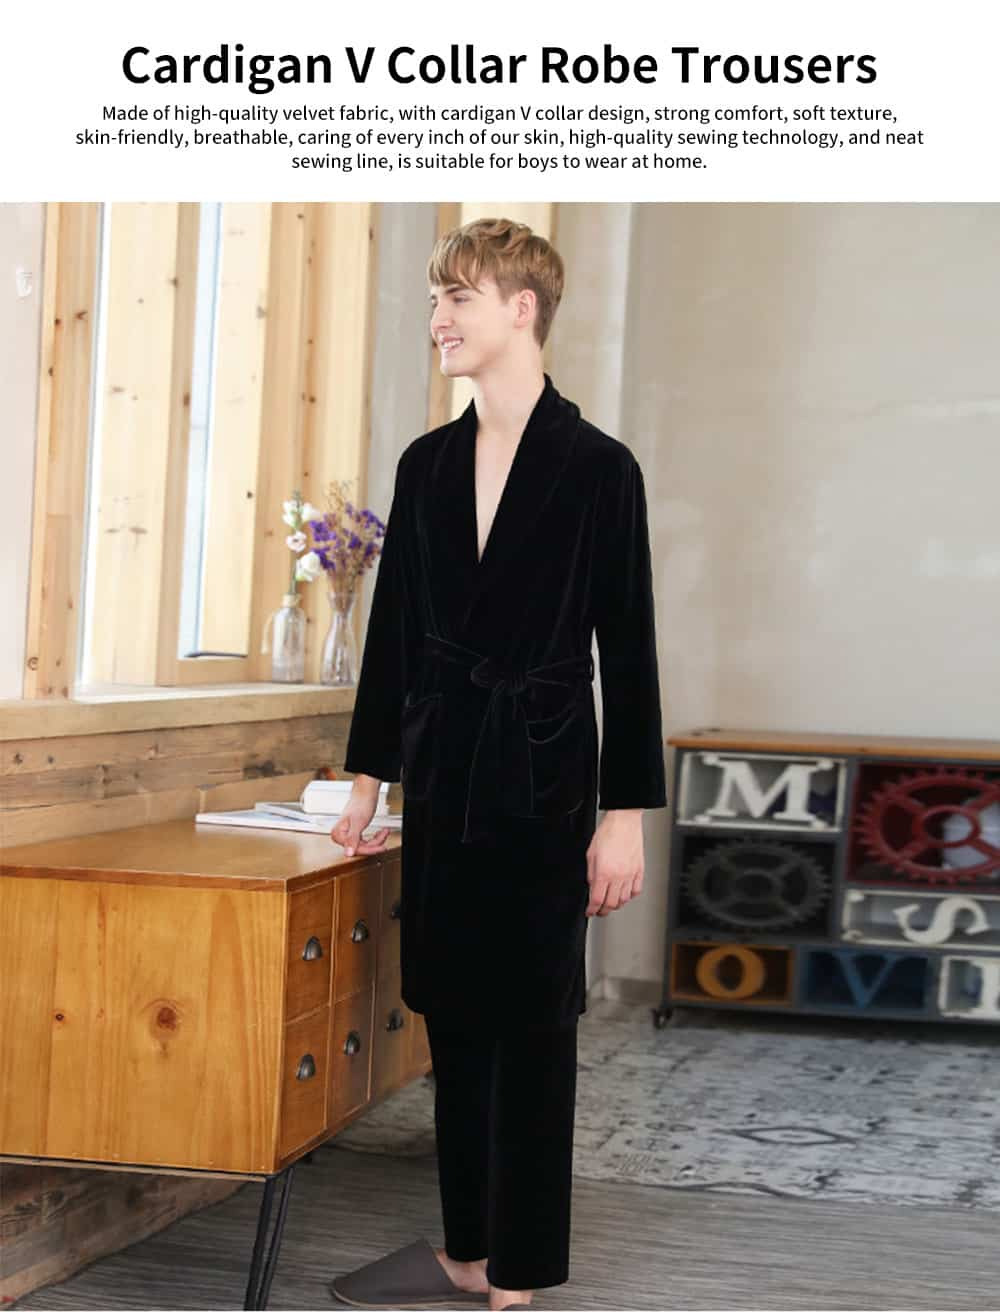 Men's Velvet Long-sleeve Pajamas, Cardigan V Collar Robe Trousers, with Two-piece Suit, Autumn Winter 0